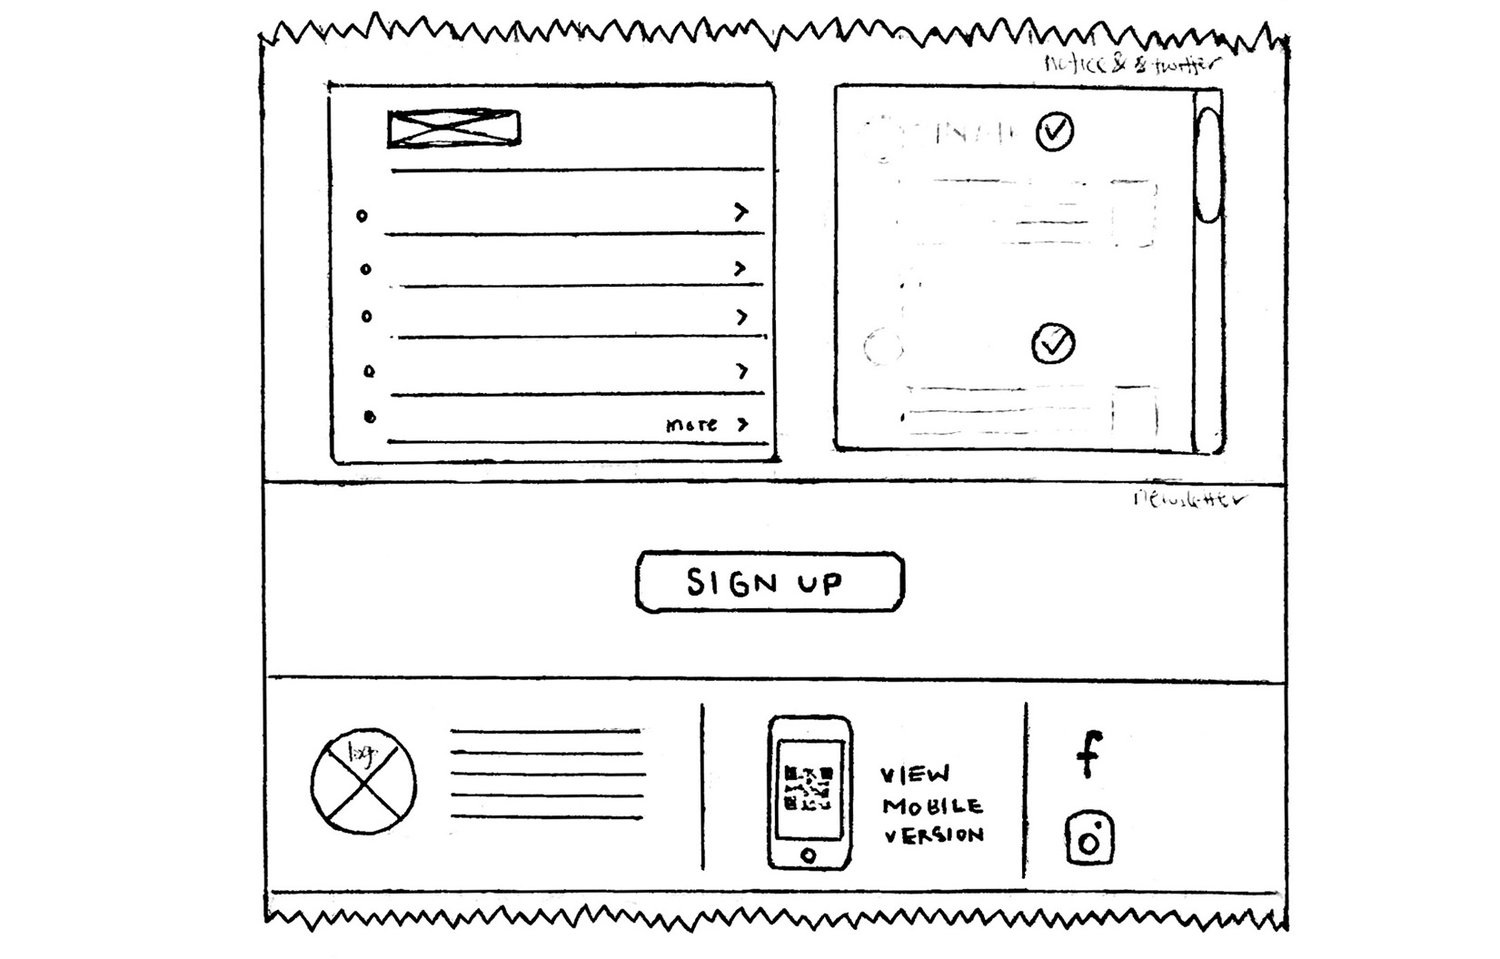 Snippet of wireframe before going into design production on Photoshop/Sketch